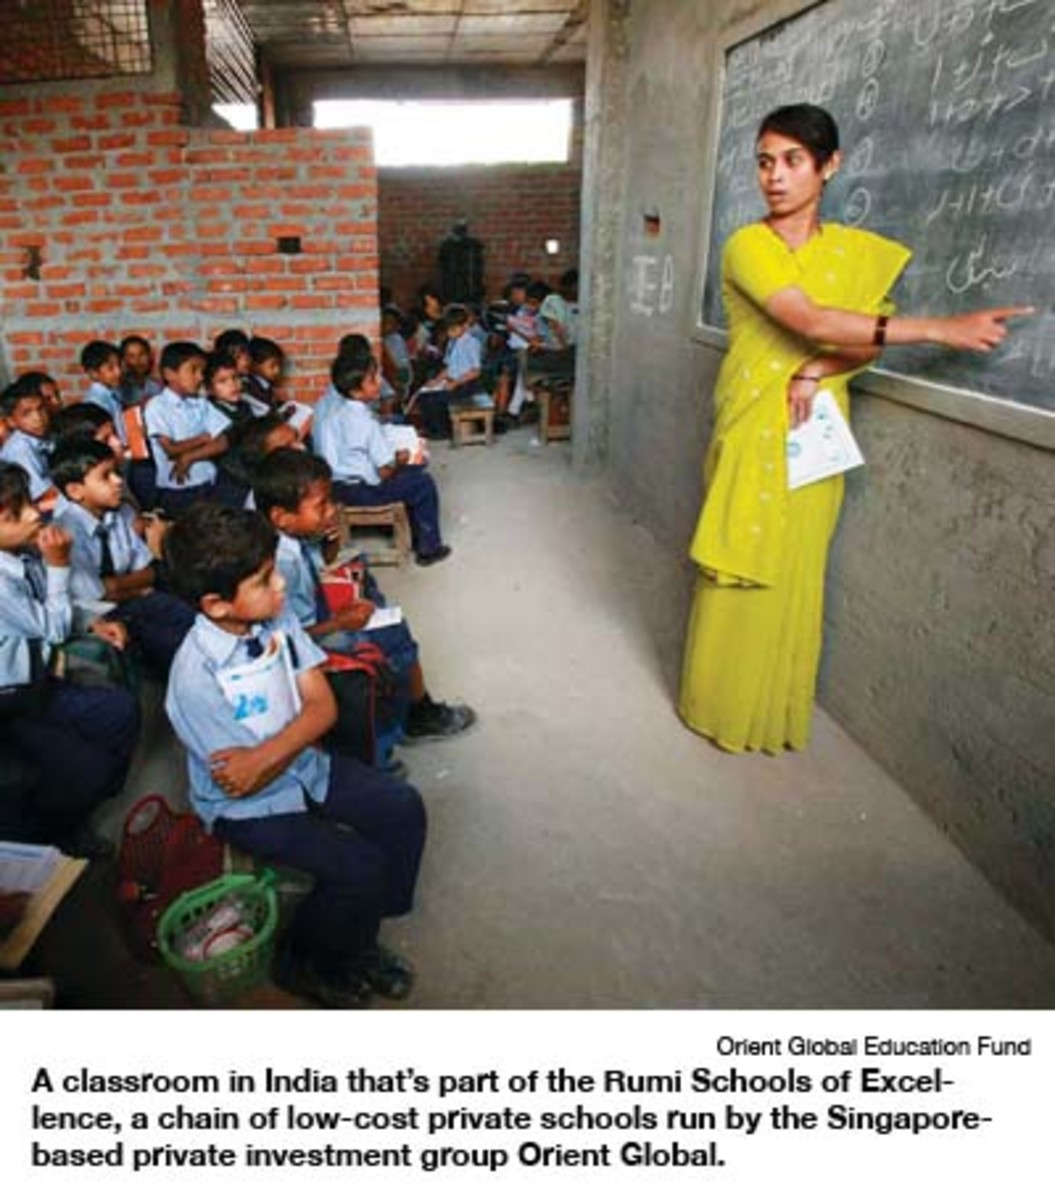 Urban_Classroom_Upgrade_India